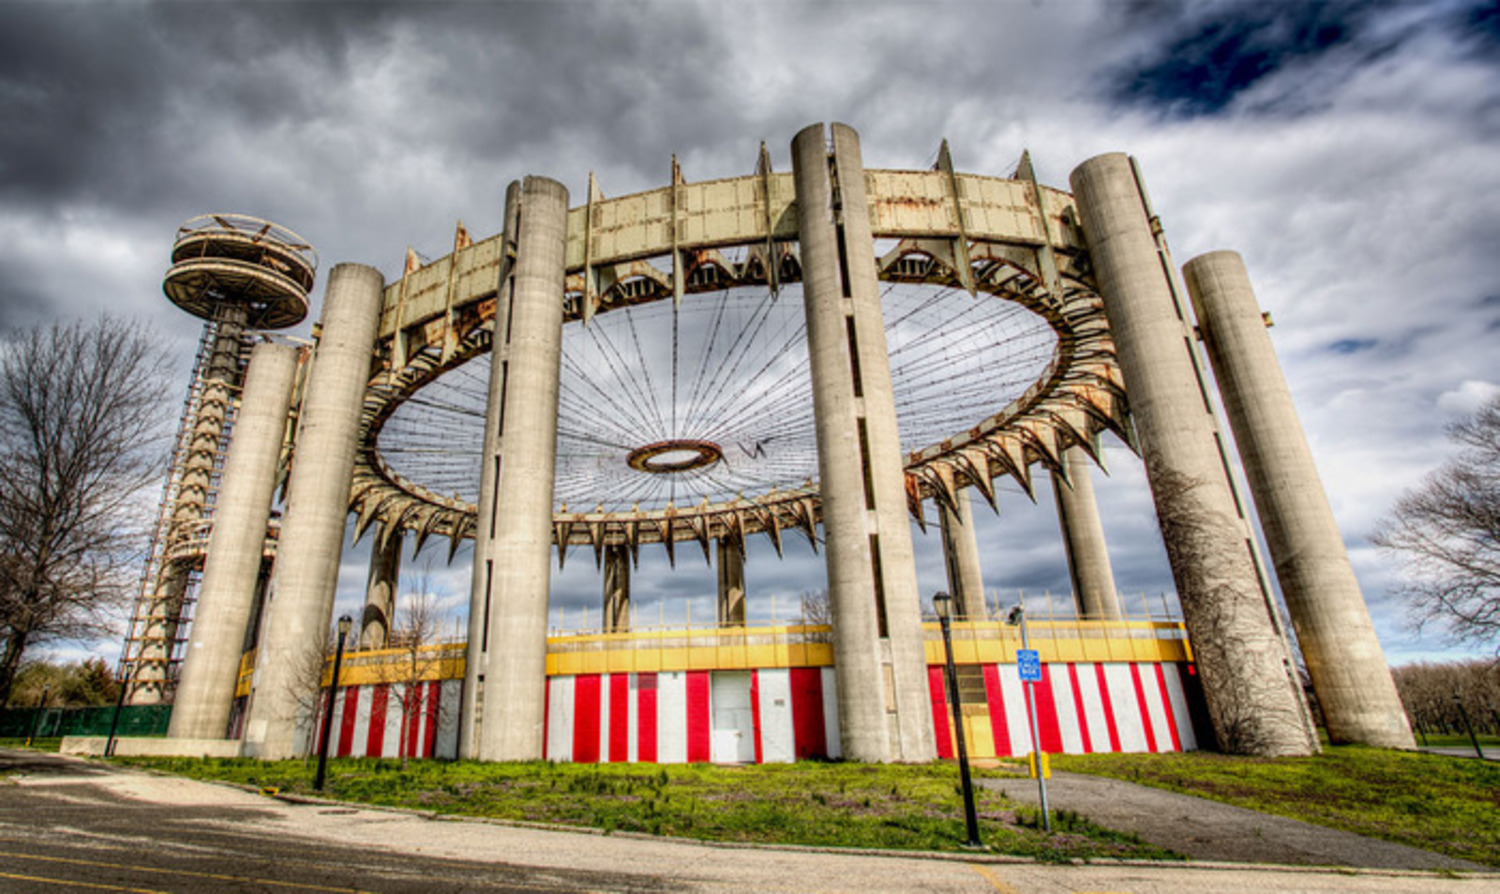 New York State Pavilion Today